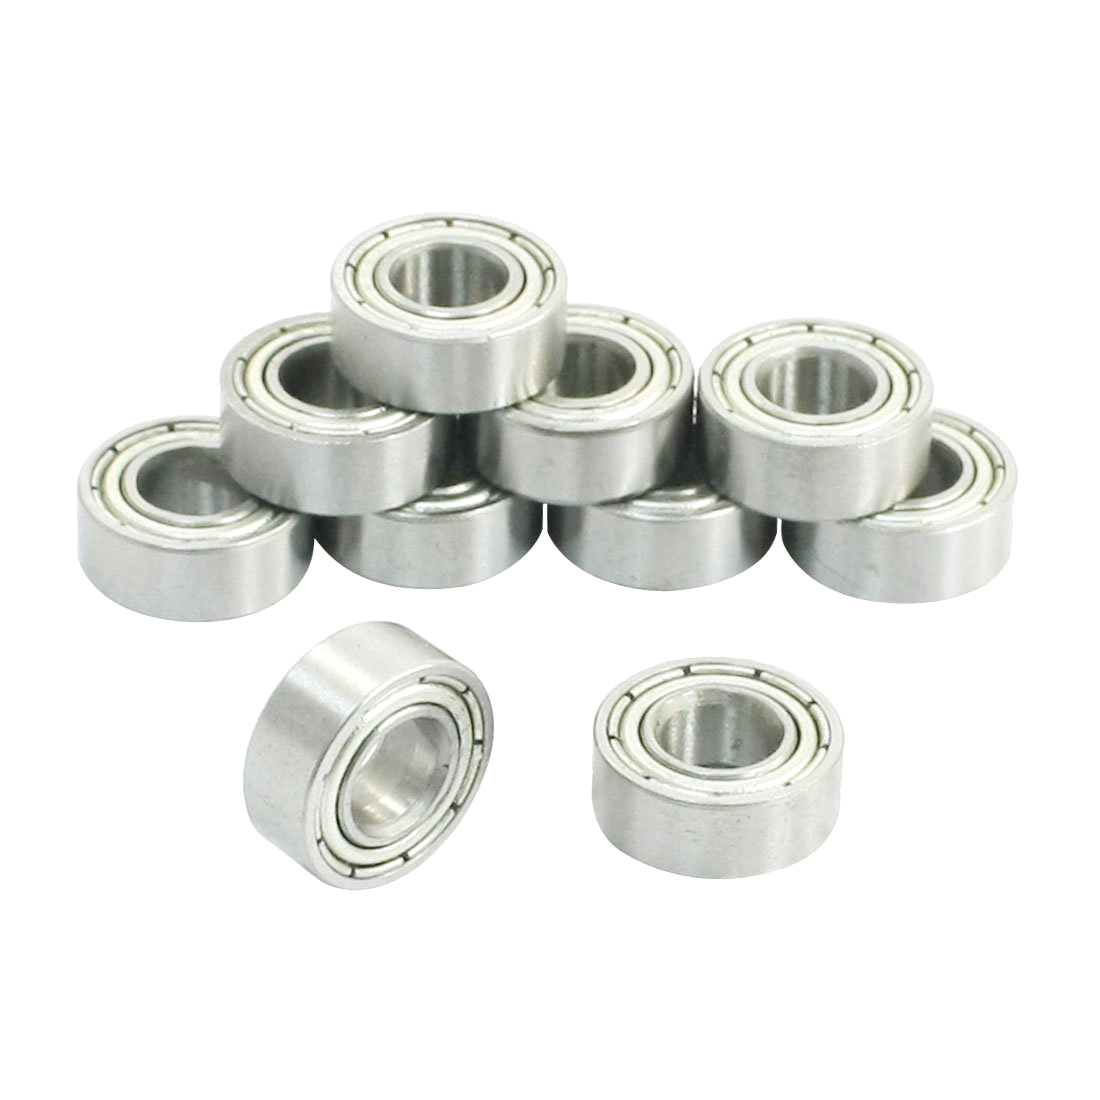 6mm x 13mm x 5mm Miniature Deep Groove Radial Ball Bearings 686Z 10Pcs abec 5 10pcs 696zz 6x15x5 mm miniature ball bearings 696 thin wall deep groove ball bearing 6962z 6 15 5mm fo 6mm shaft